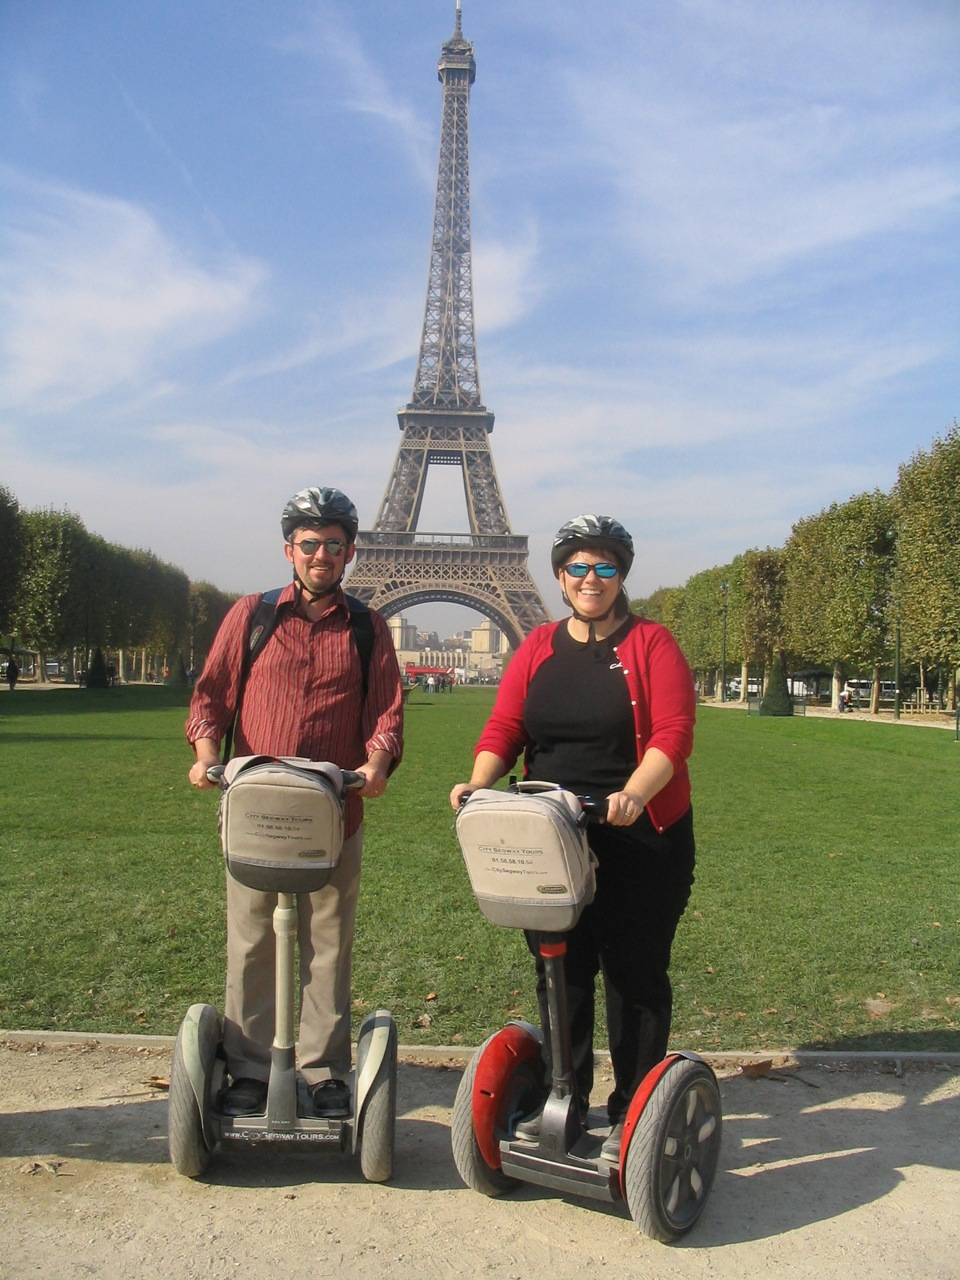 I'm currently in the process of booking hotels and things to do while I'm in Paris/London next month.    Grace suggested doing a  segway tour  while in Paris.      Those who know me know I'm never above being a complete geek, but do I really want to be this person while in Paris?